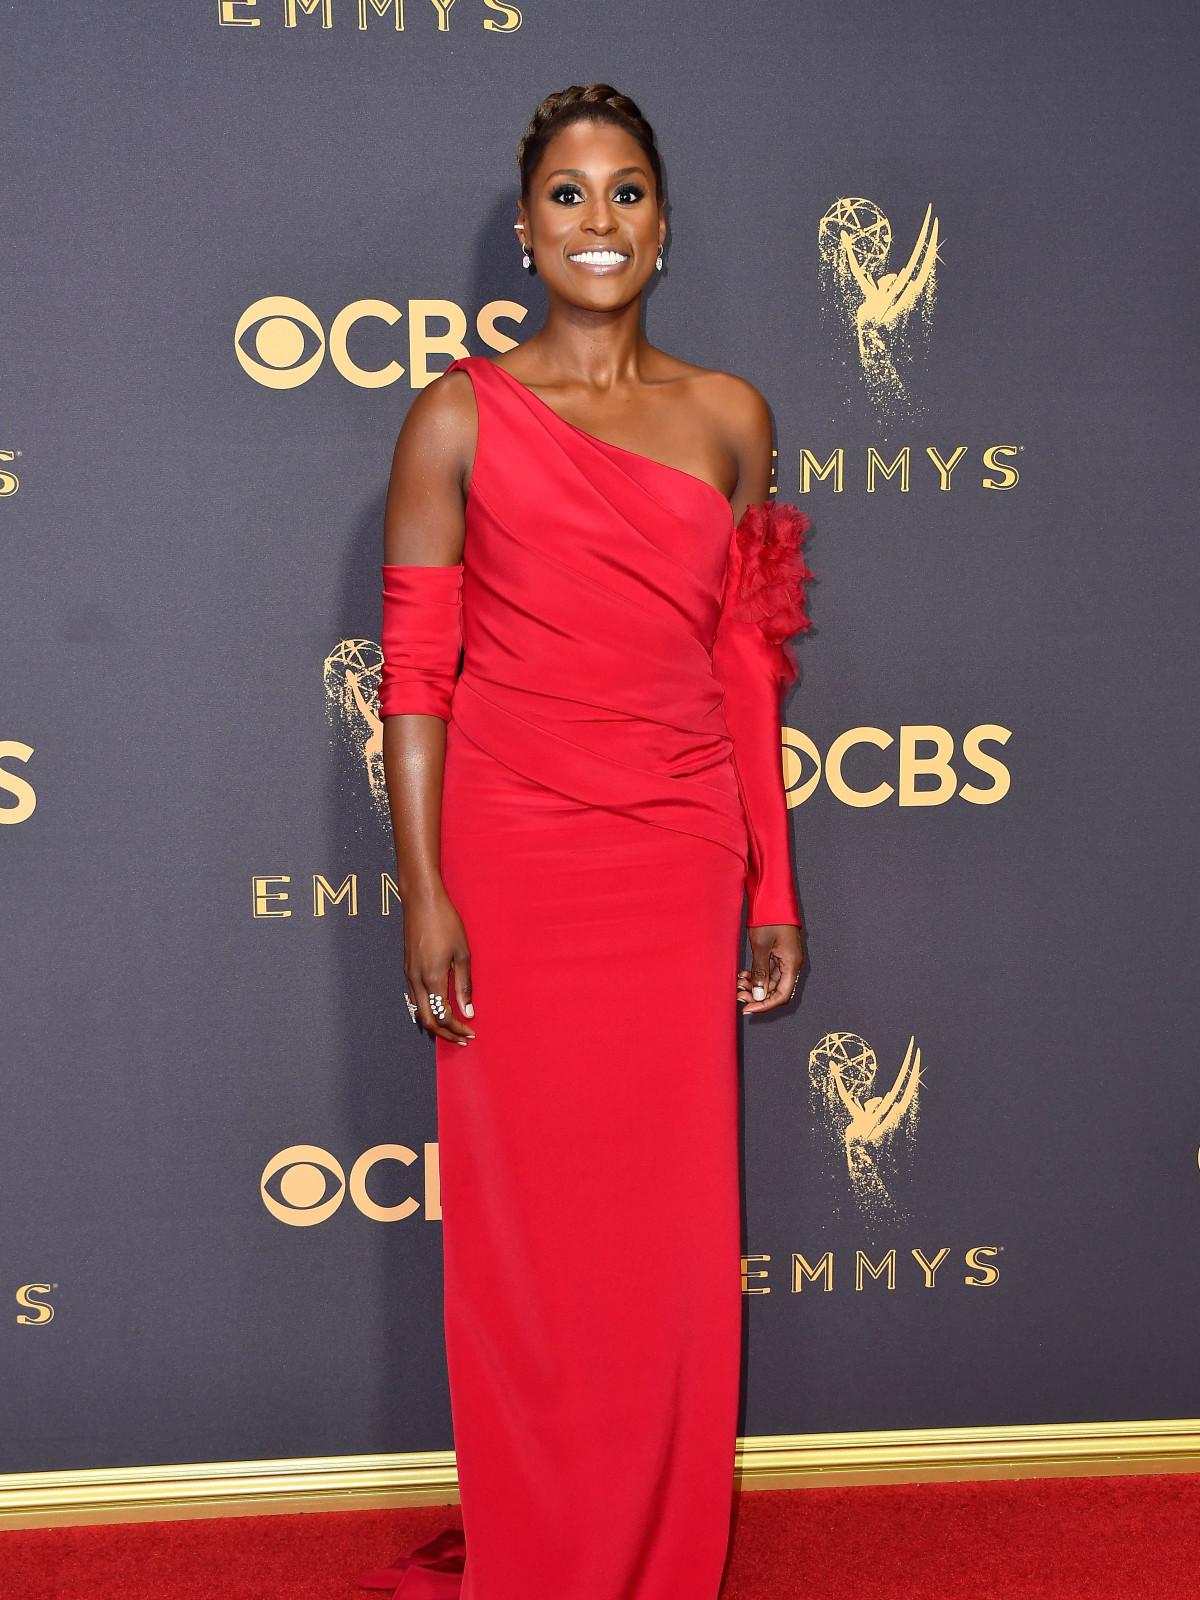 Issa Rae in Vera Wang at Emmy Awards 2017